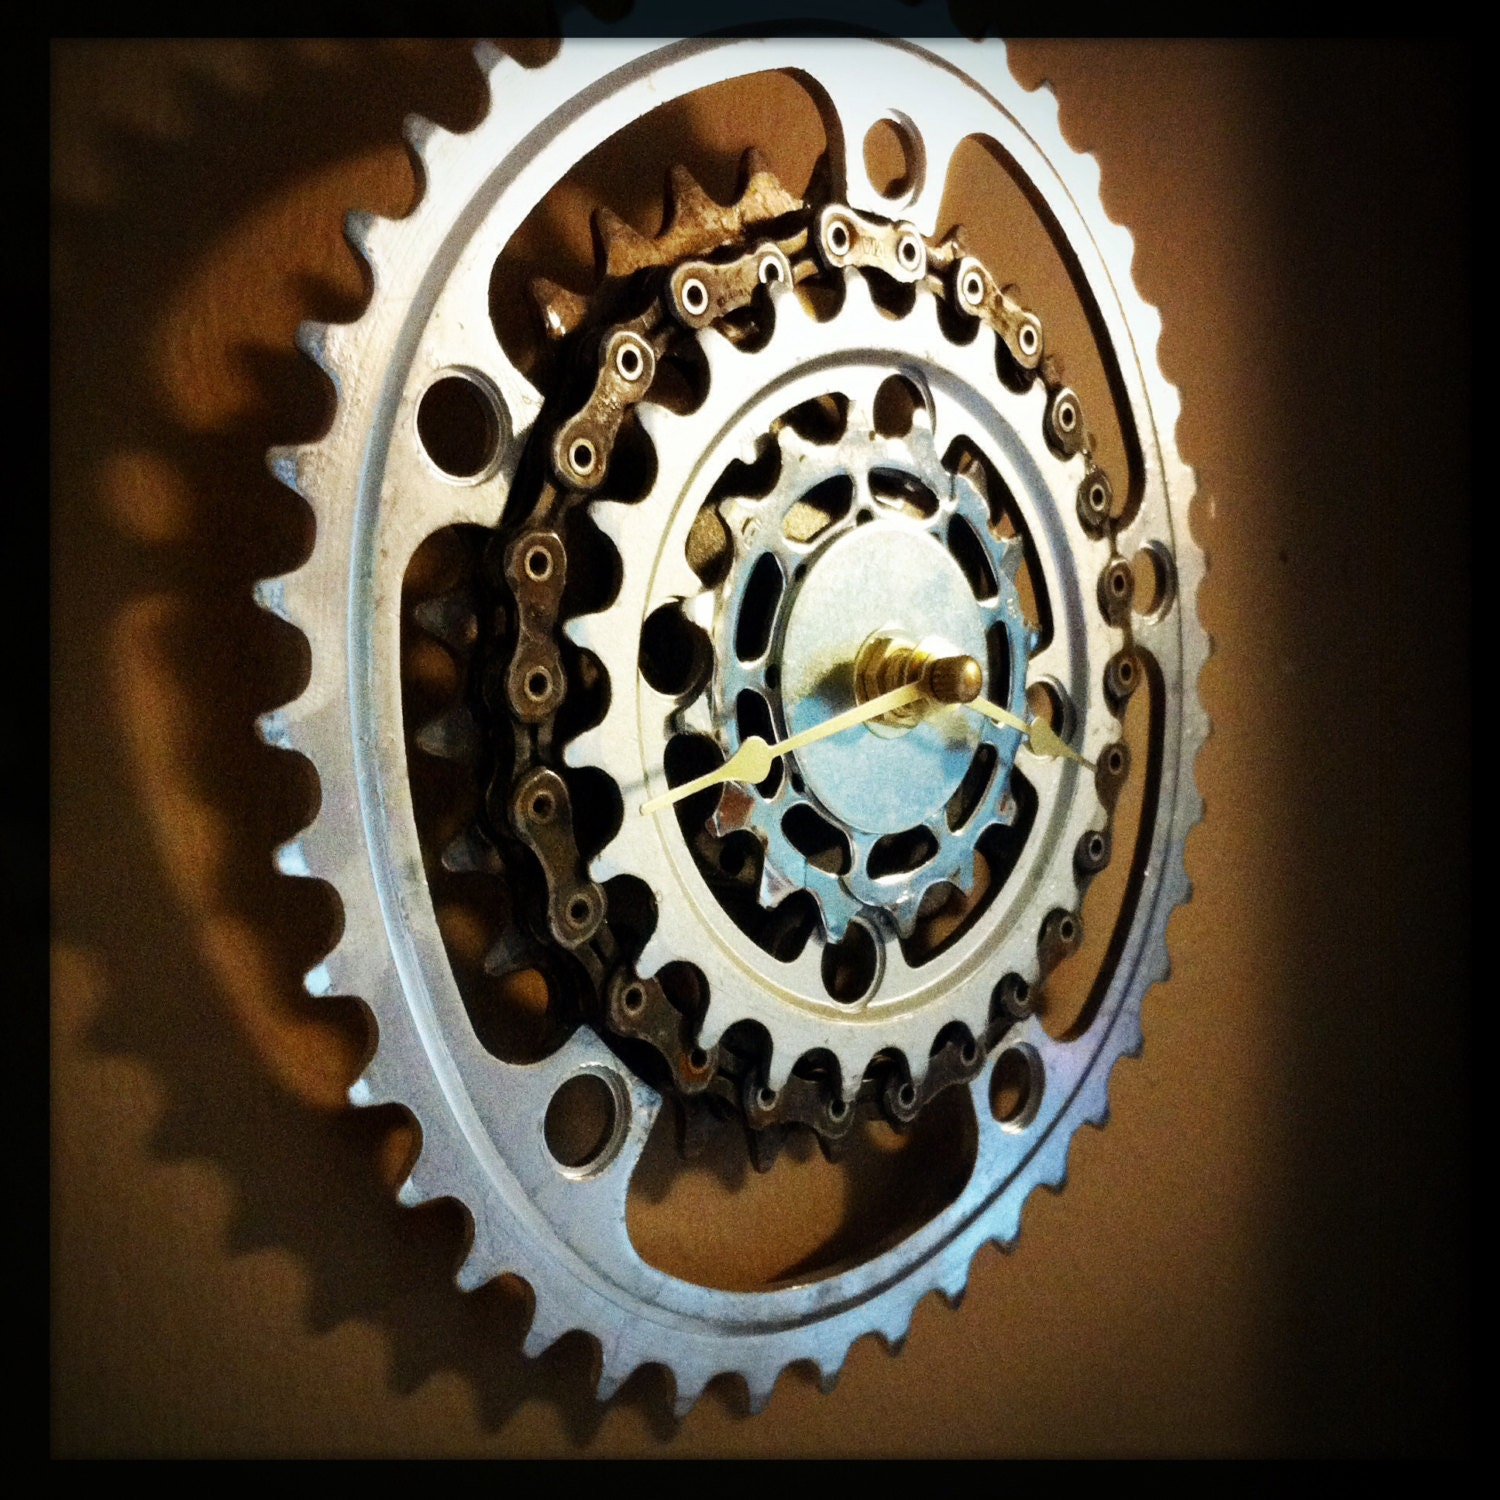 Bicycle wall clock industrial decor steampunk wedding gift zoom amipublicfo Images